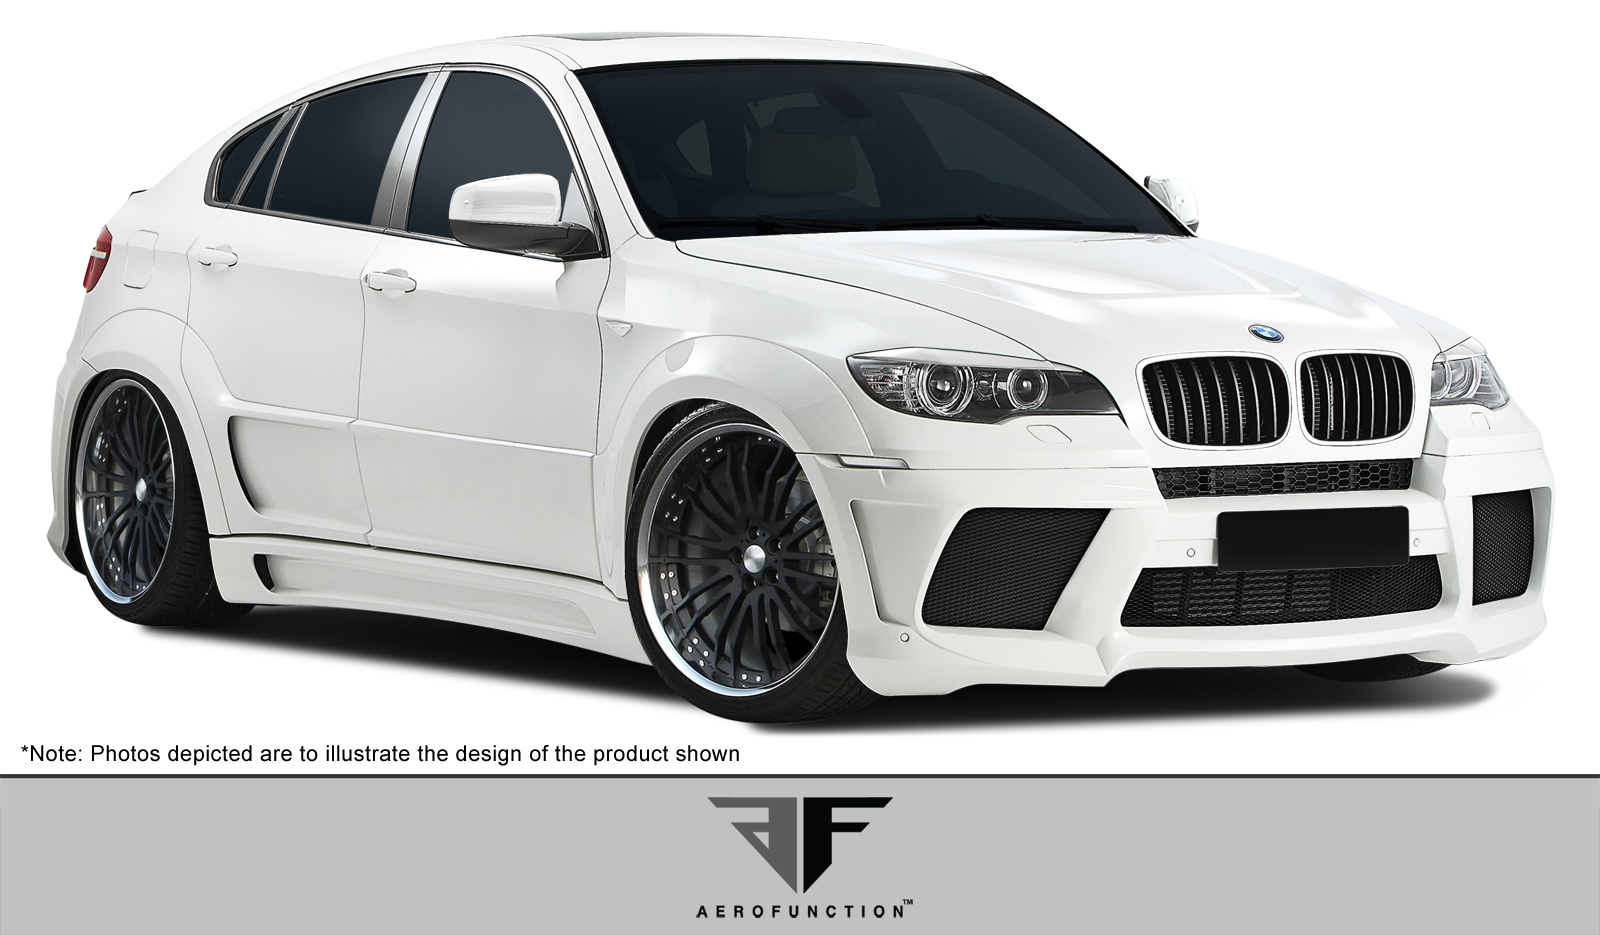 2014 BMW X6 ALL - Other Body Kit Bodykit - BMW X6 X6M AF-3 Wide Body Kit ( GFK ) - 13 Piece - Includes AF-3 Wide Body Front Bumper Cover (1079